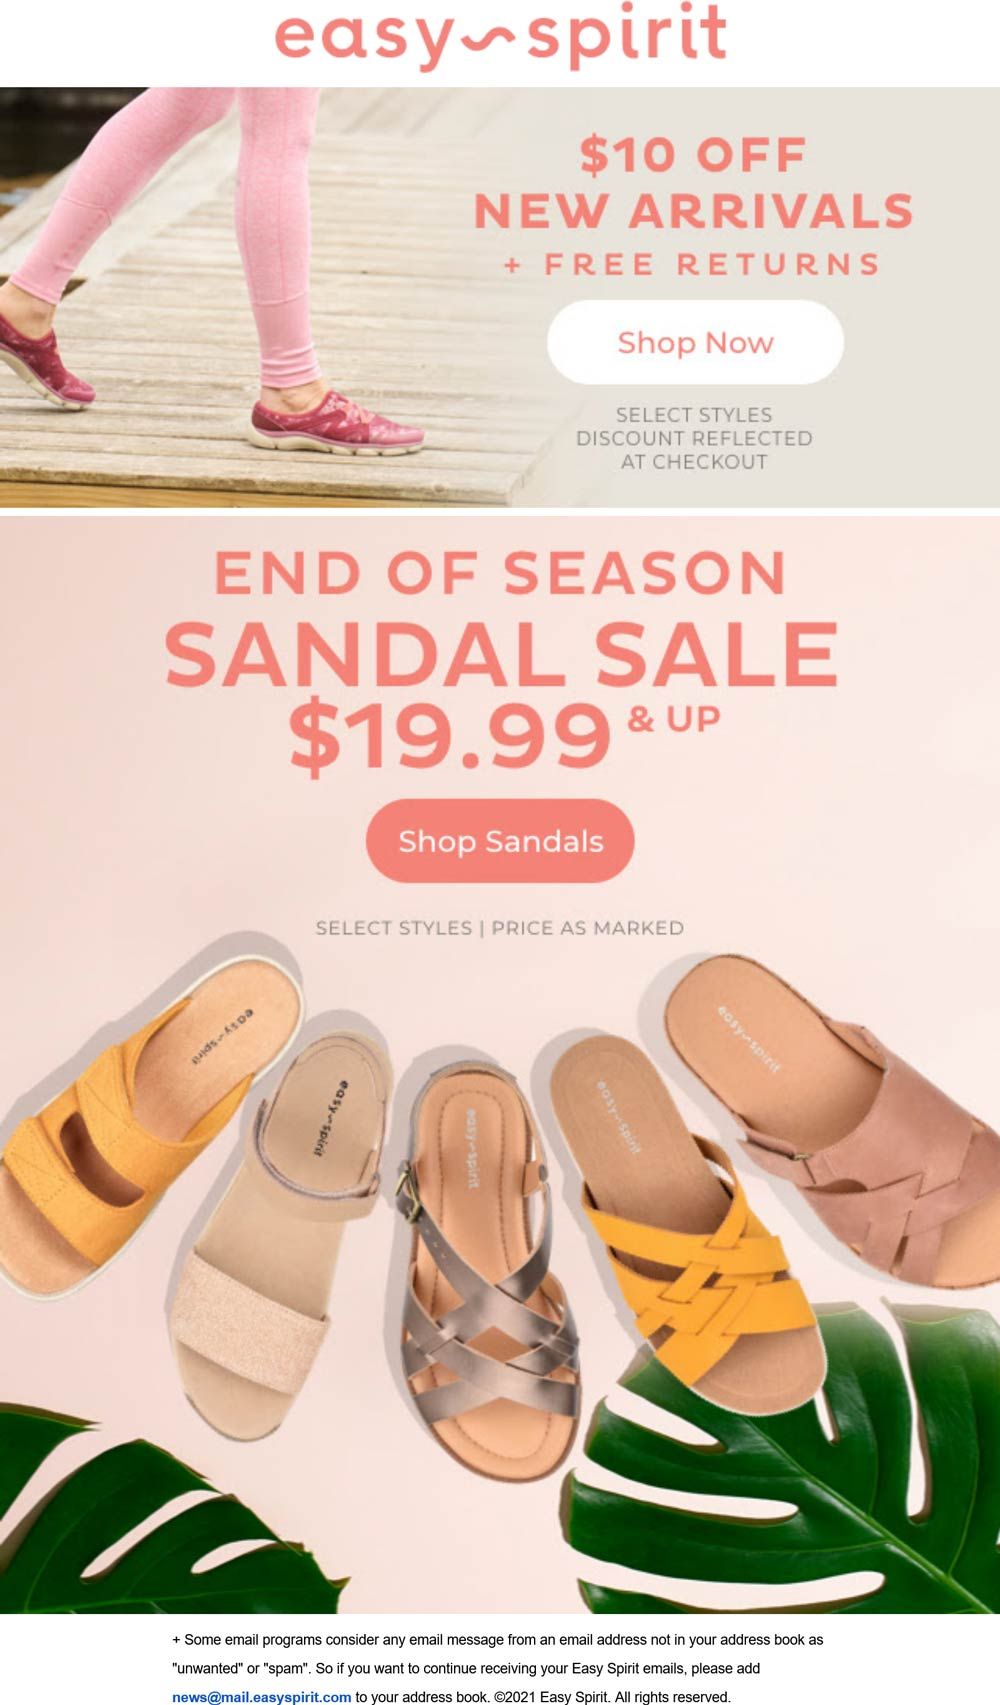 Easy Spirit stores Coupon  $10 off new arrivals at Easy Spirit shoes #easyspirit